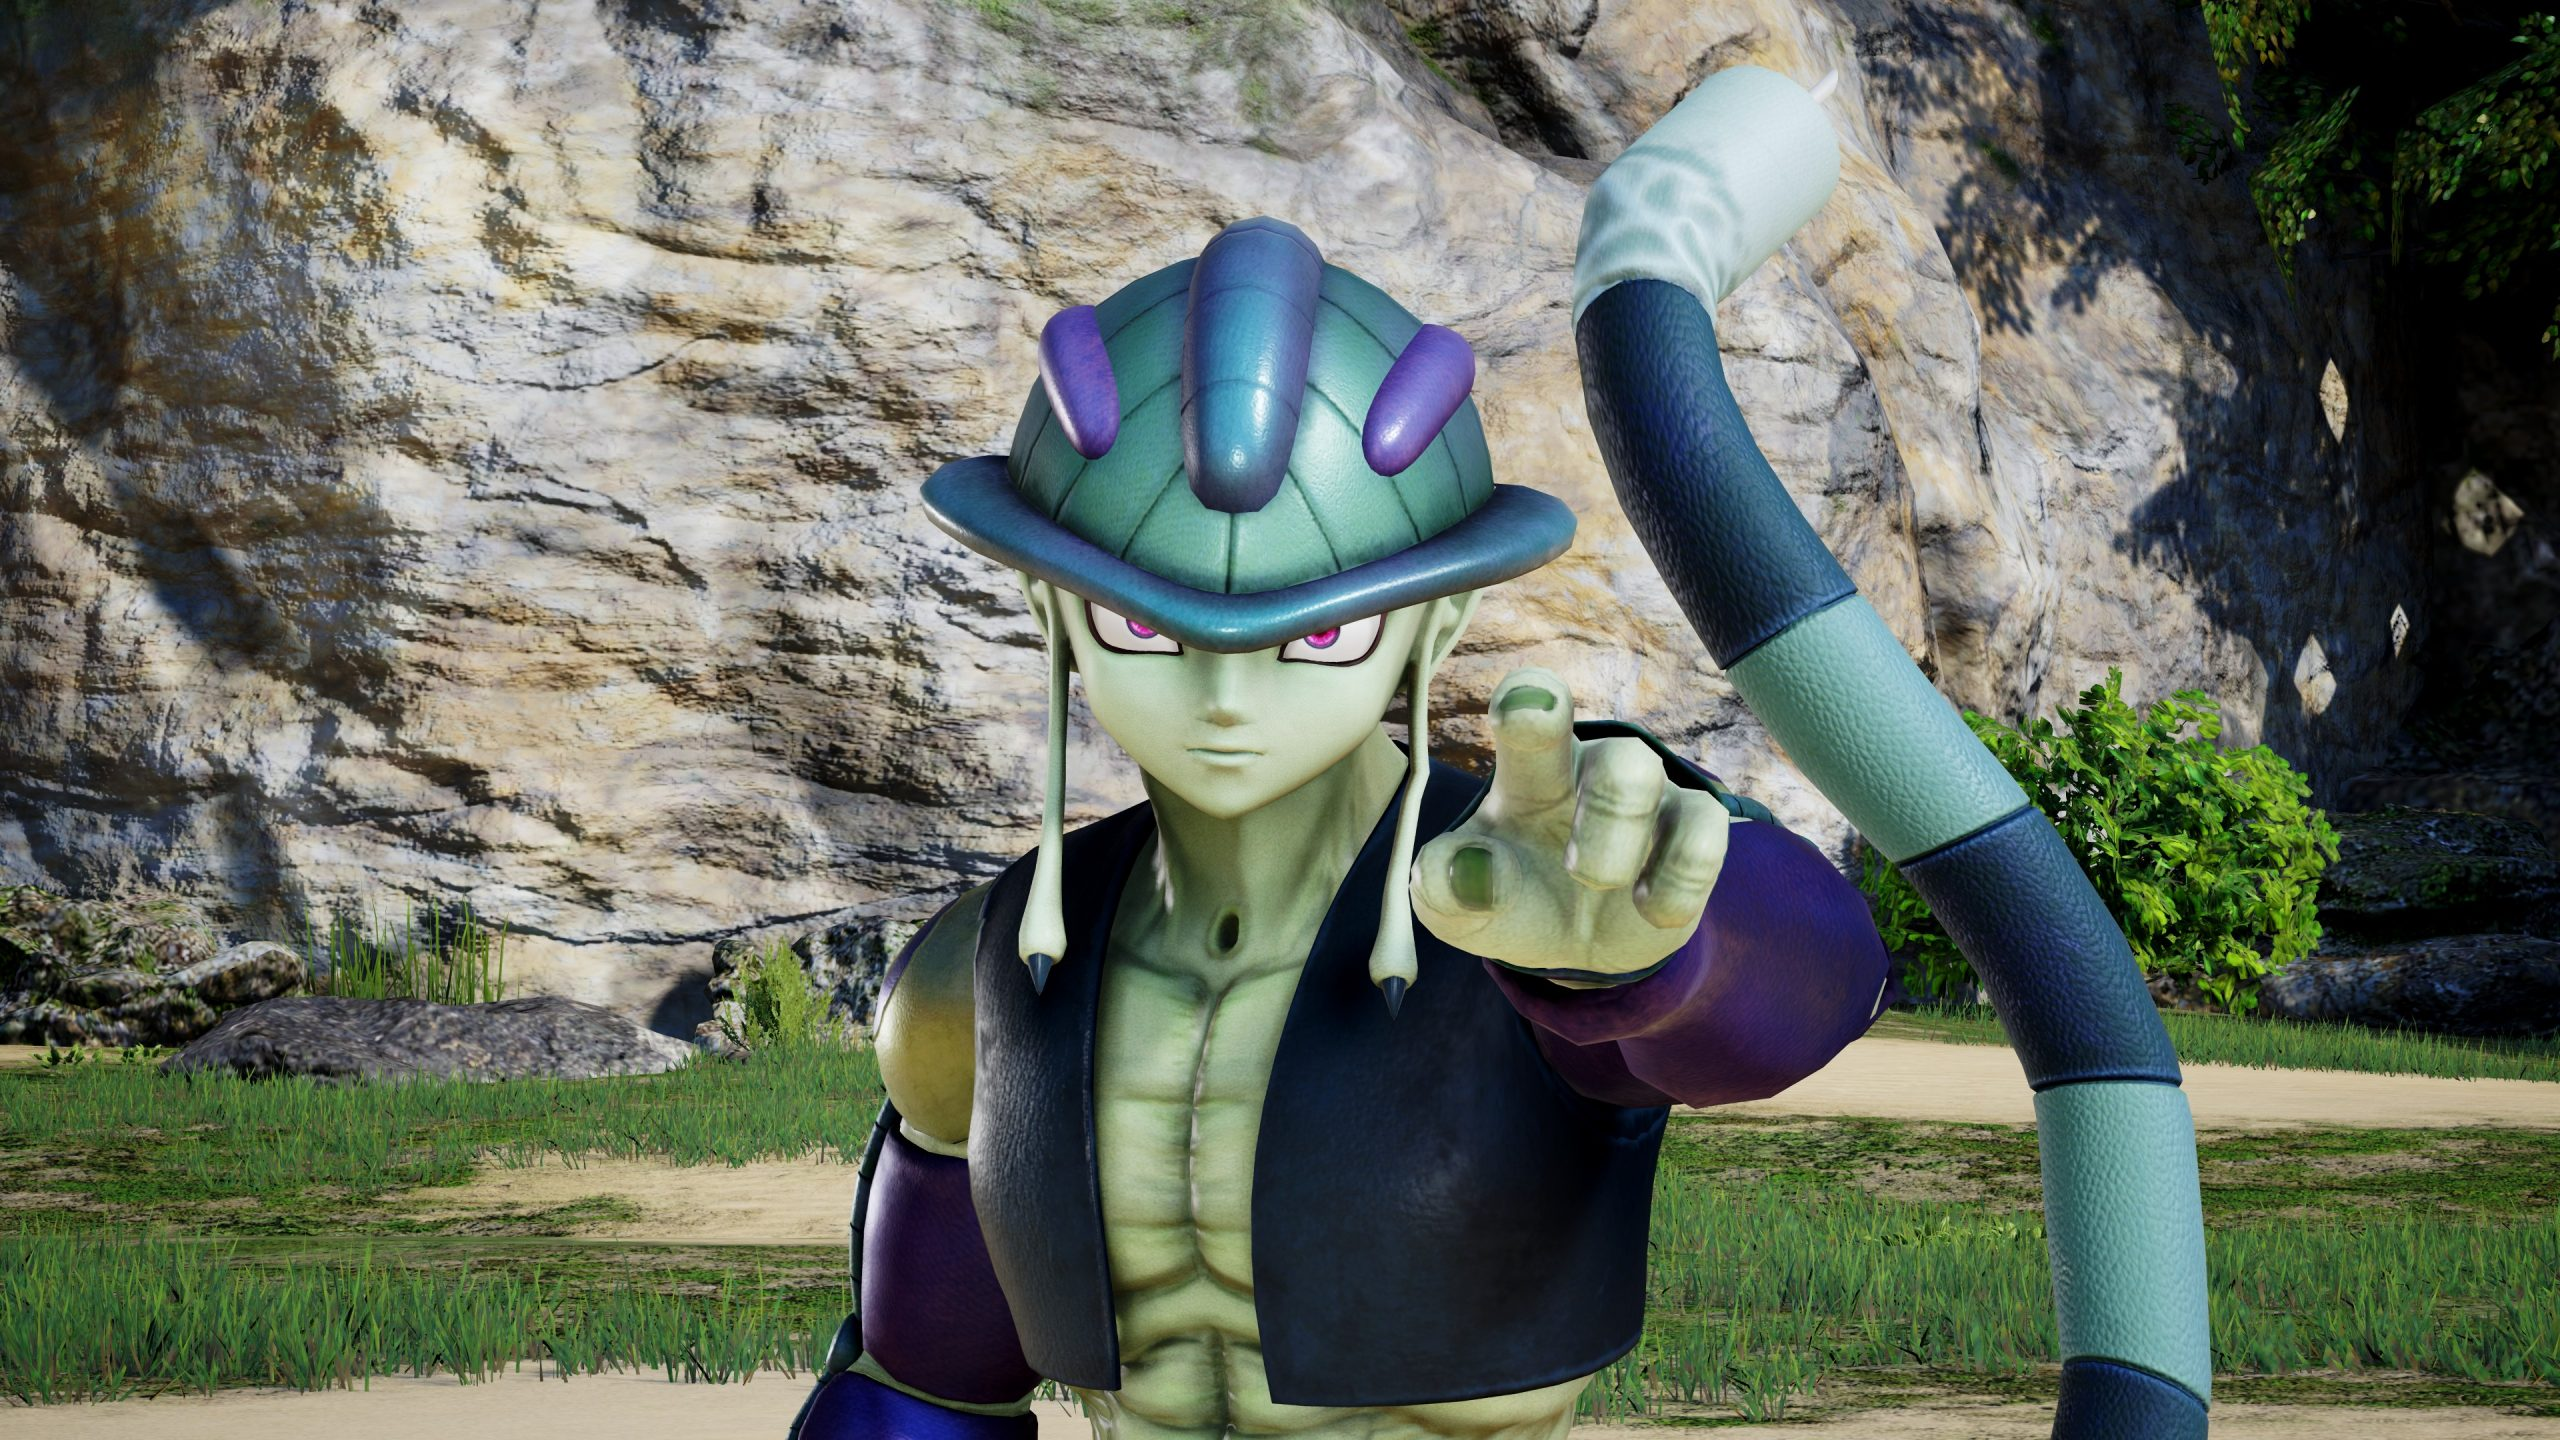 New Character Meruem Is Joining JUMP FORCE!